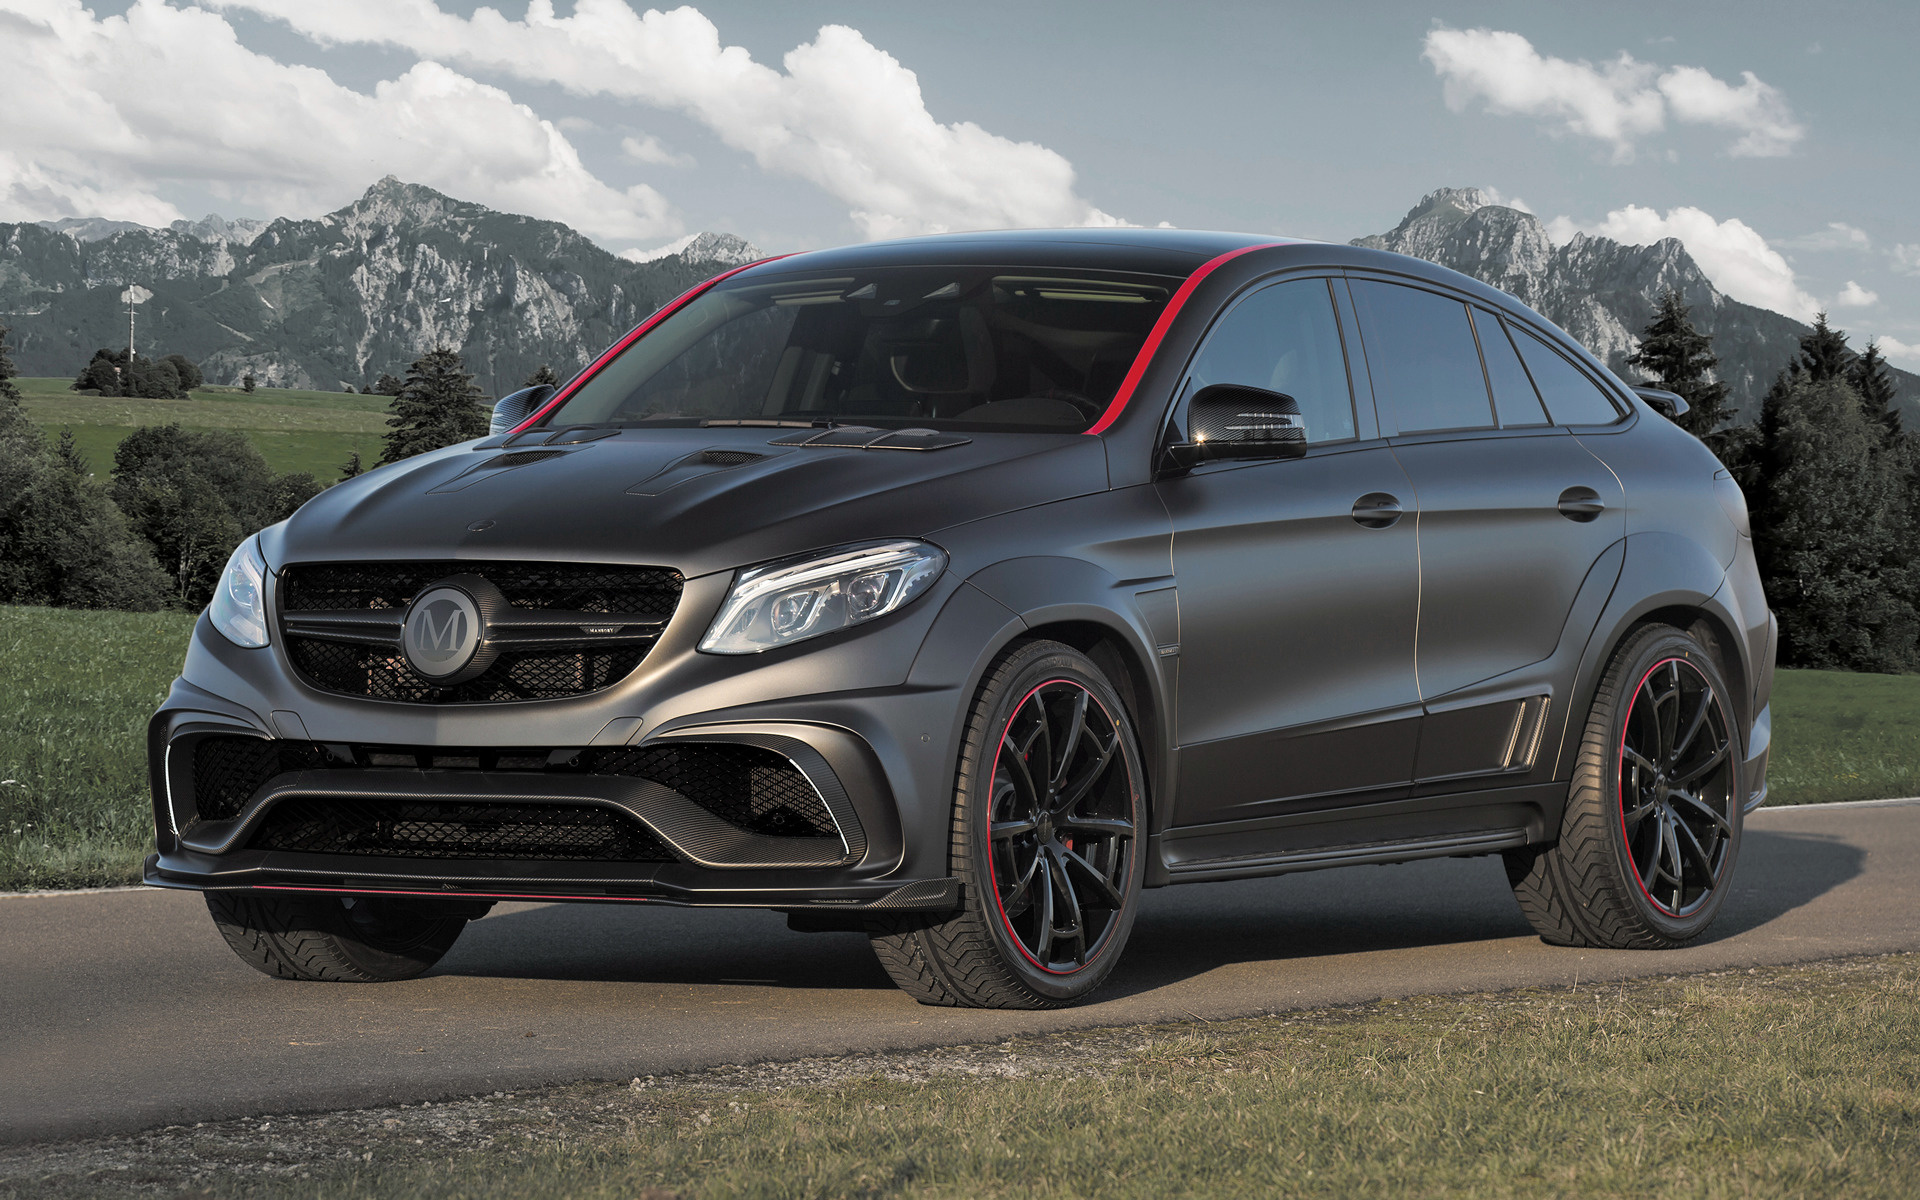 Mercedes-AMG GLE 63 Coupe by Mansory (2016) Wallpapers and ...